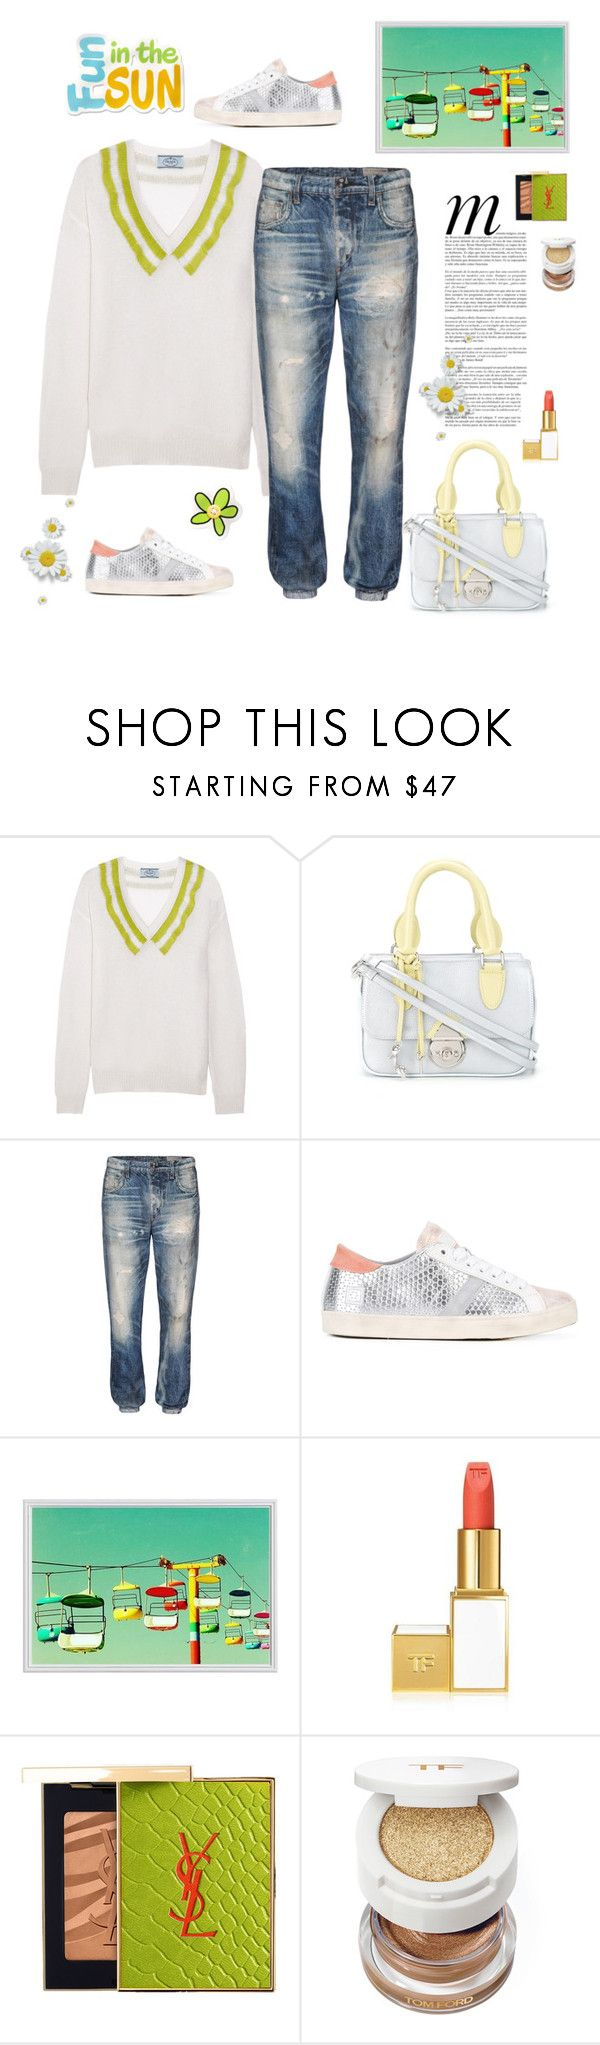 """""""Less is more"""" by juliabachmann ❤ liked on Polyvore featuring Prada, Sarah Chofakian, rag & bone/JEAN, Whiteley, D.A.T.E., Pottery Barn, Yves Saint Laurent and Tom Ford"""